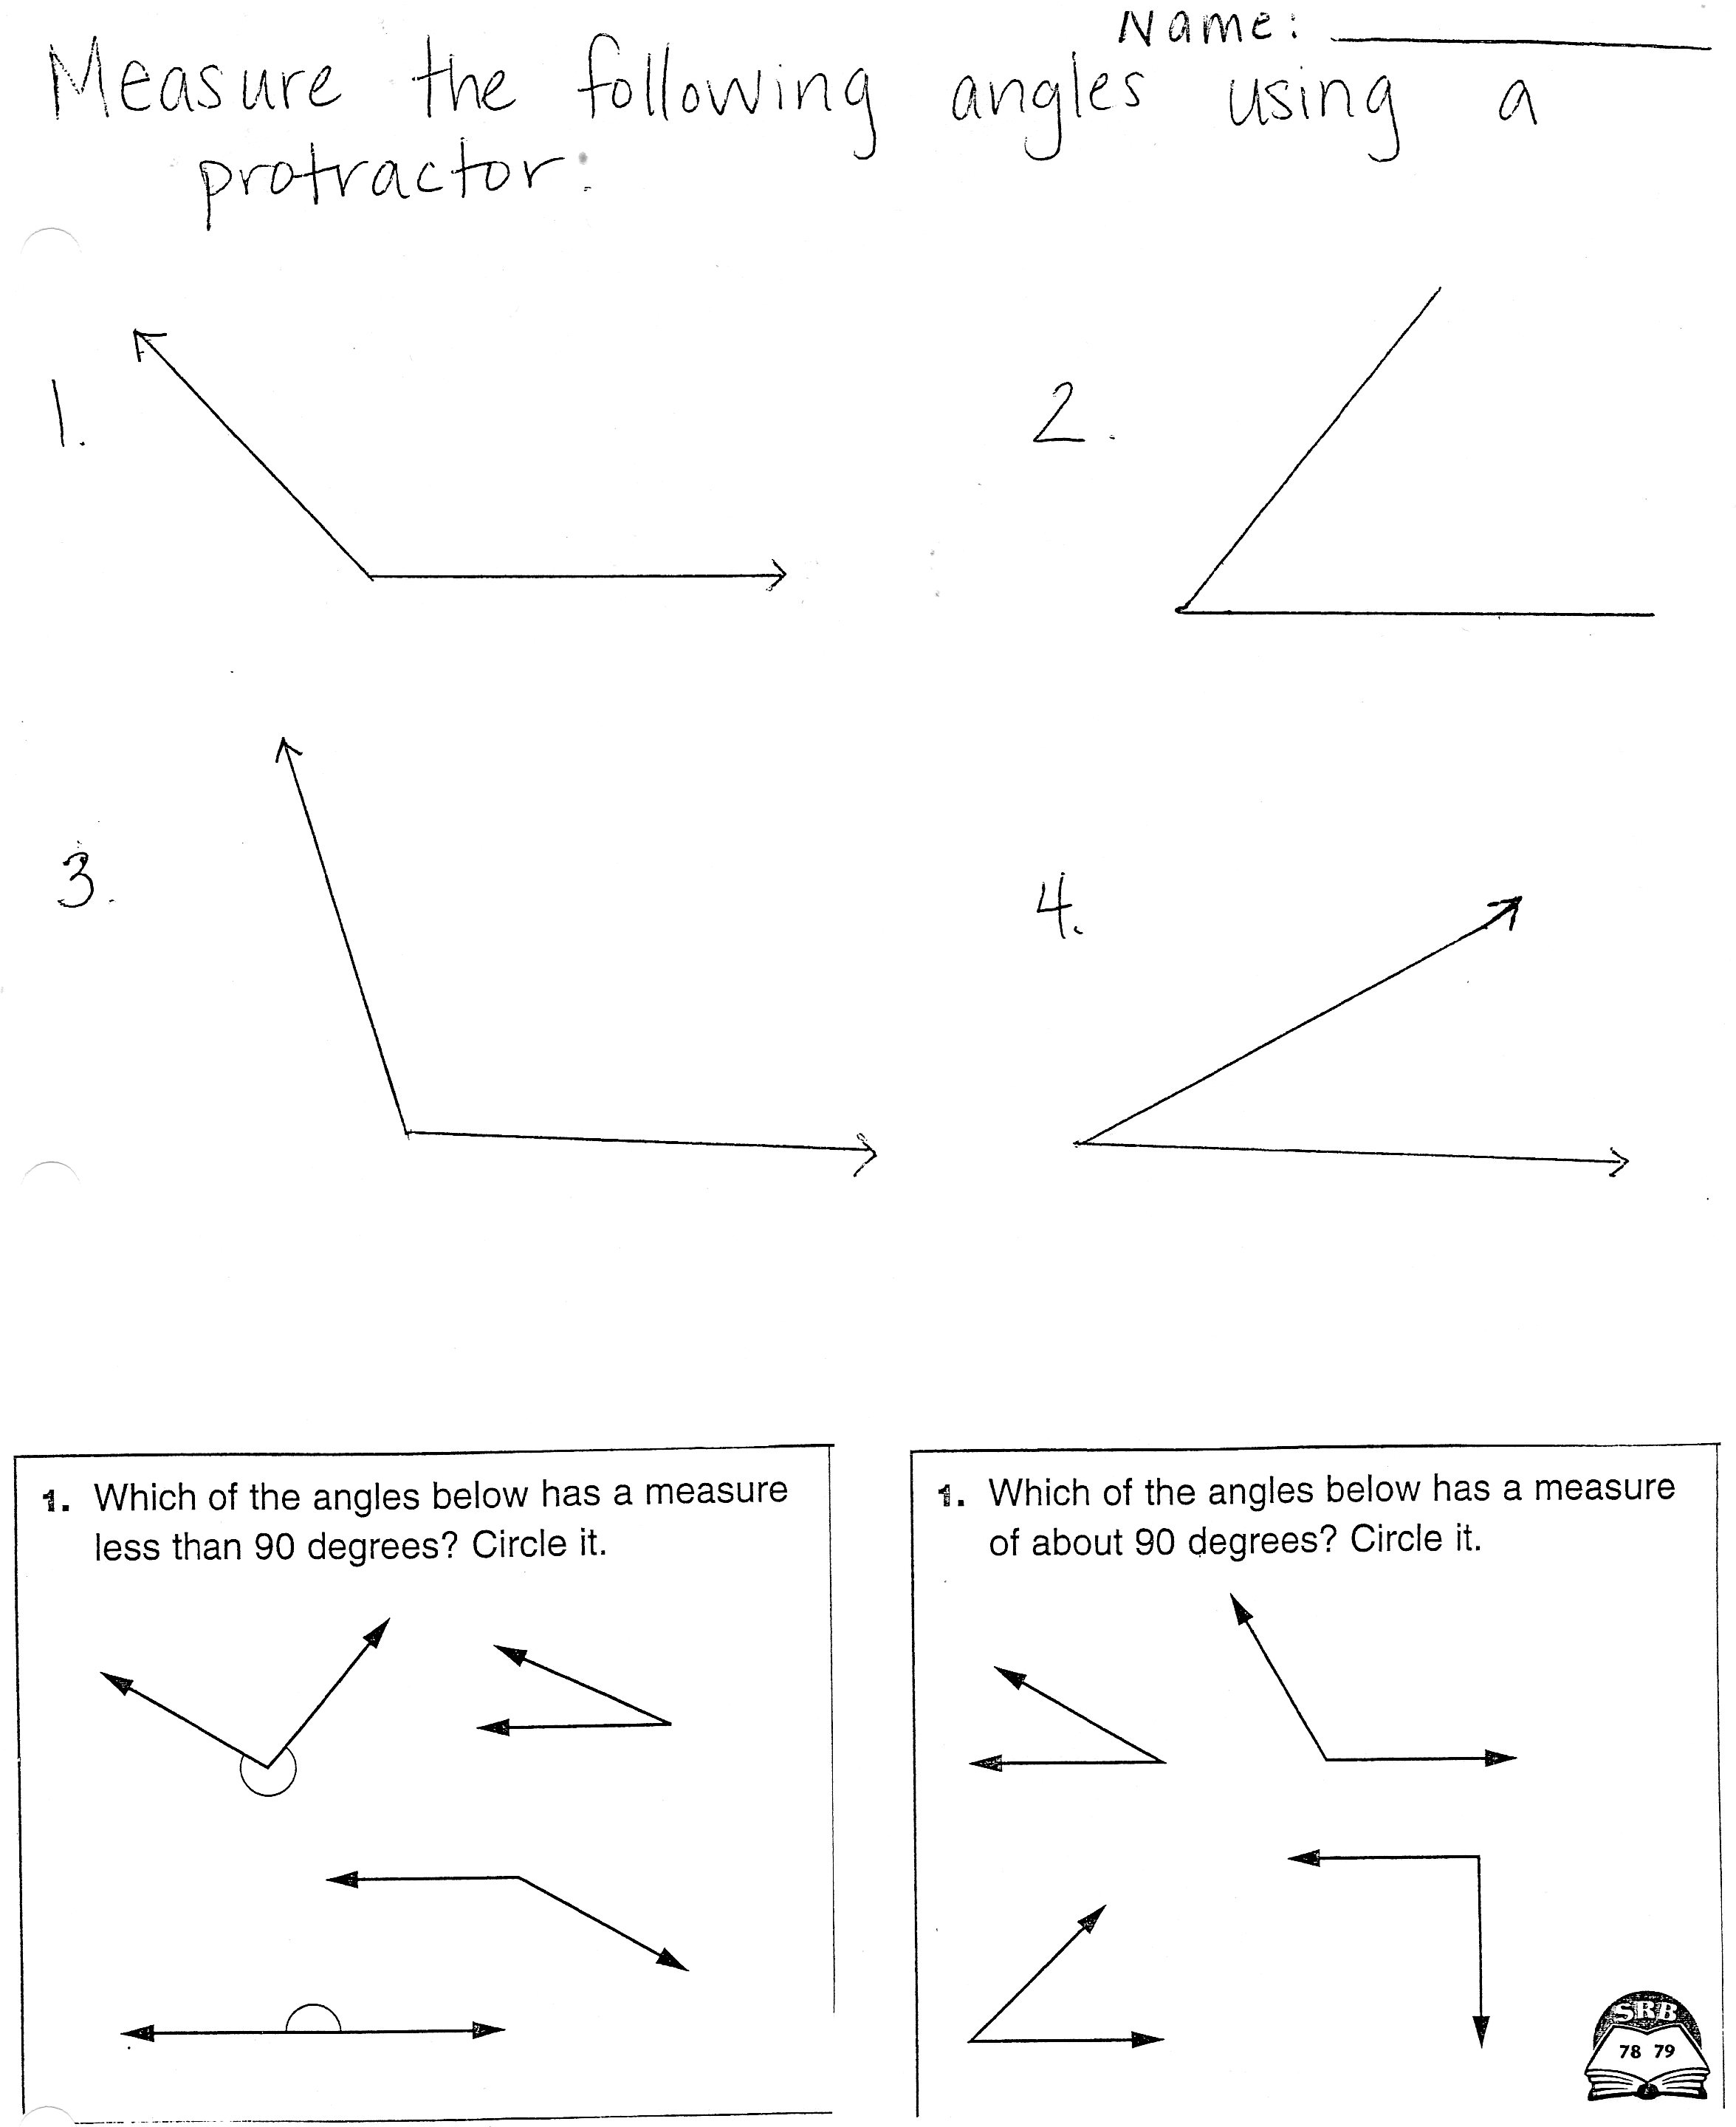 Measuring Angles with a Protractor Worksheet.jpg